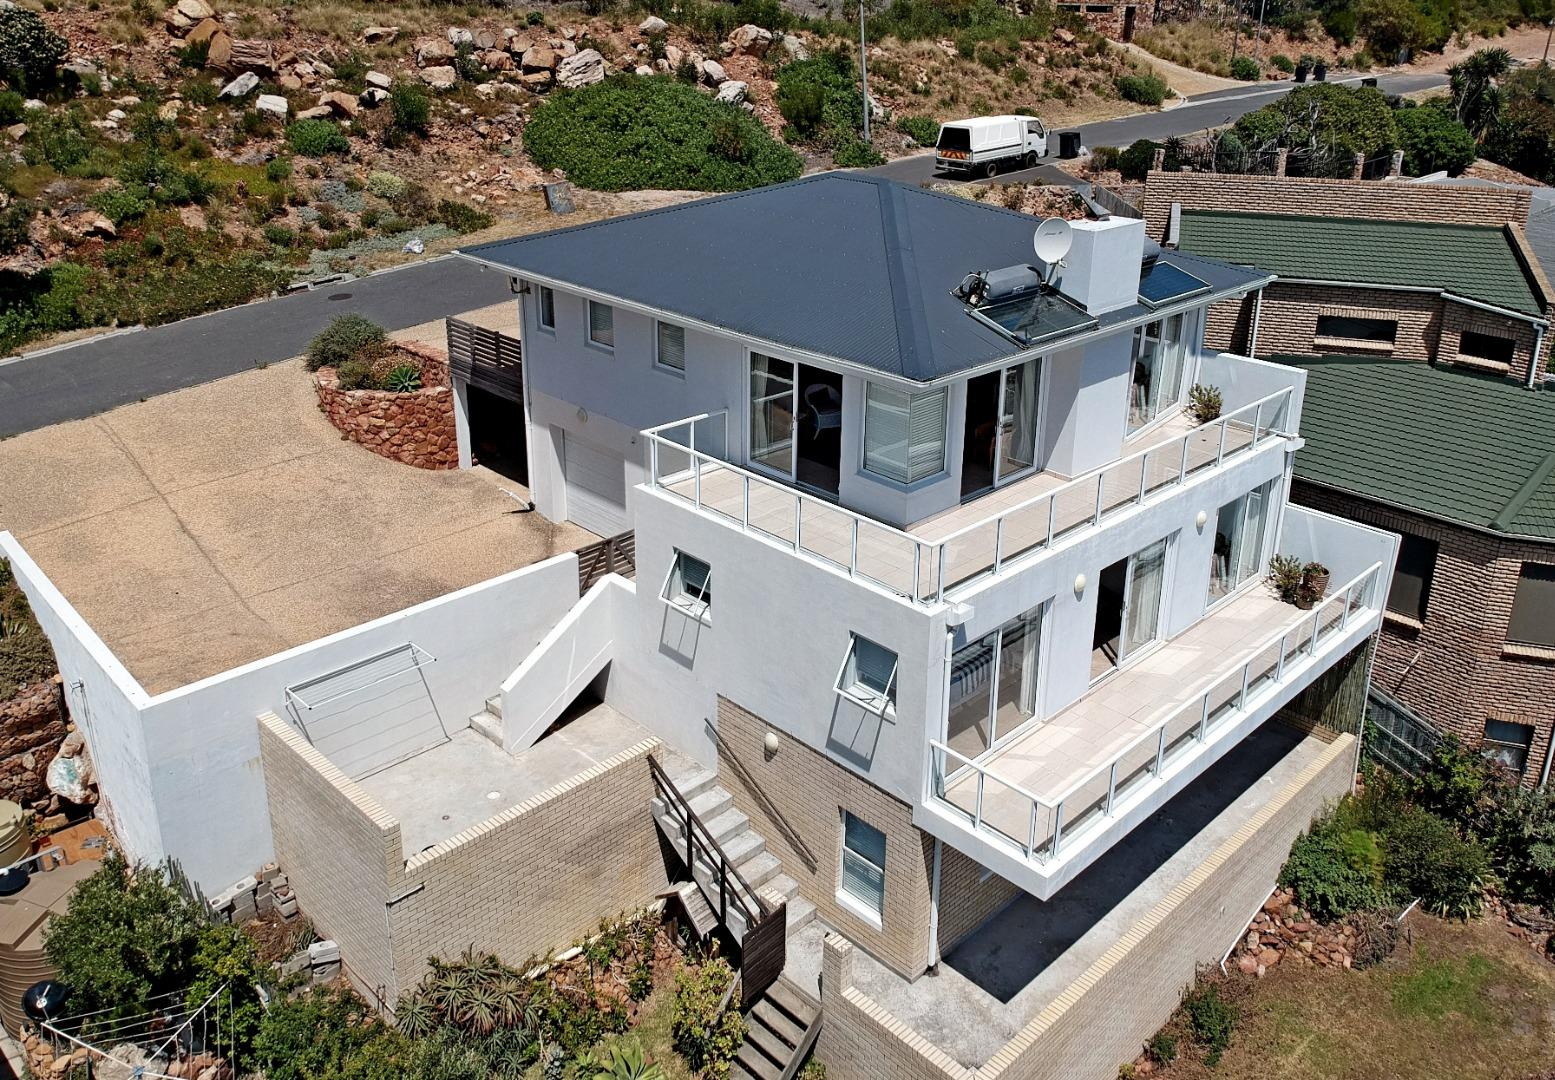 4 Bedroom  House for Sale in Fish Hoek - Western Cape